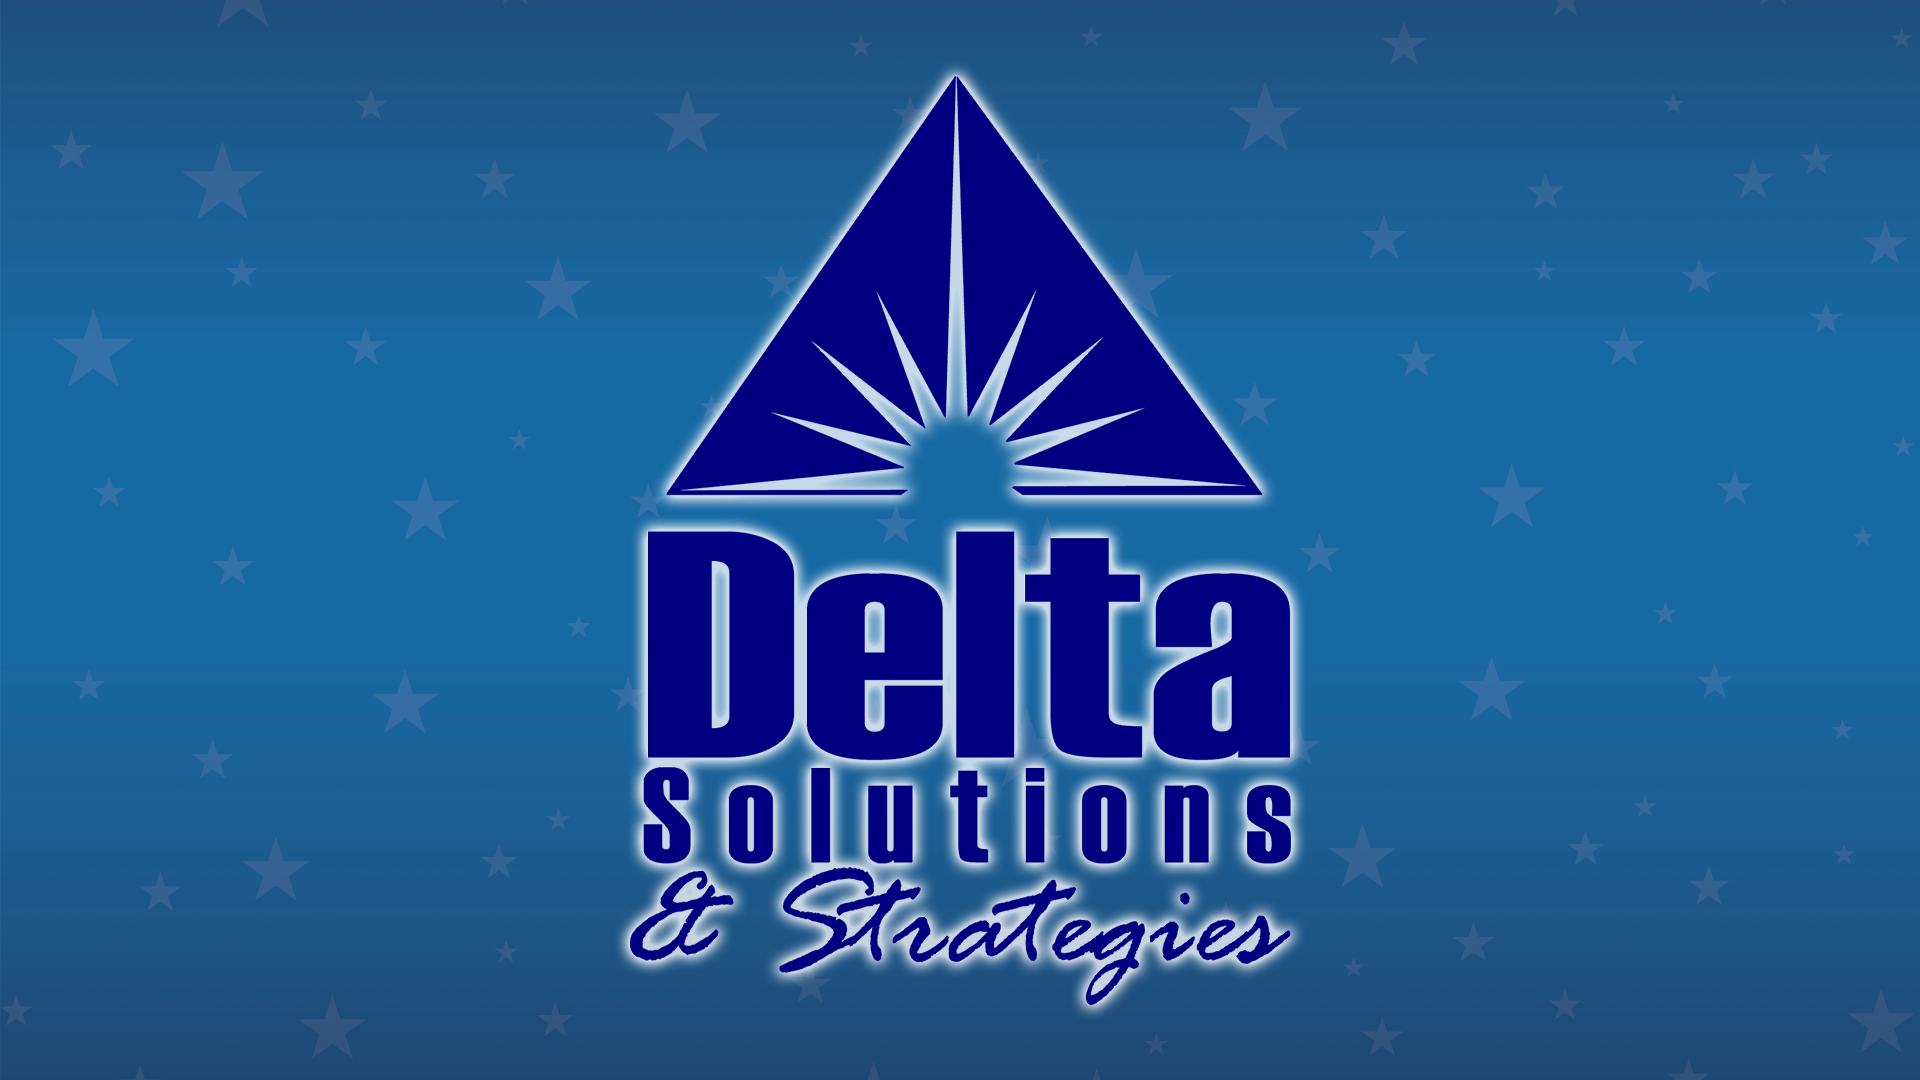 Delta Solutions & Strategies, LLC